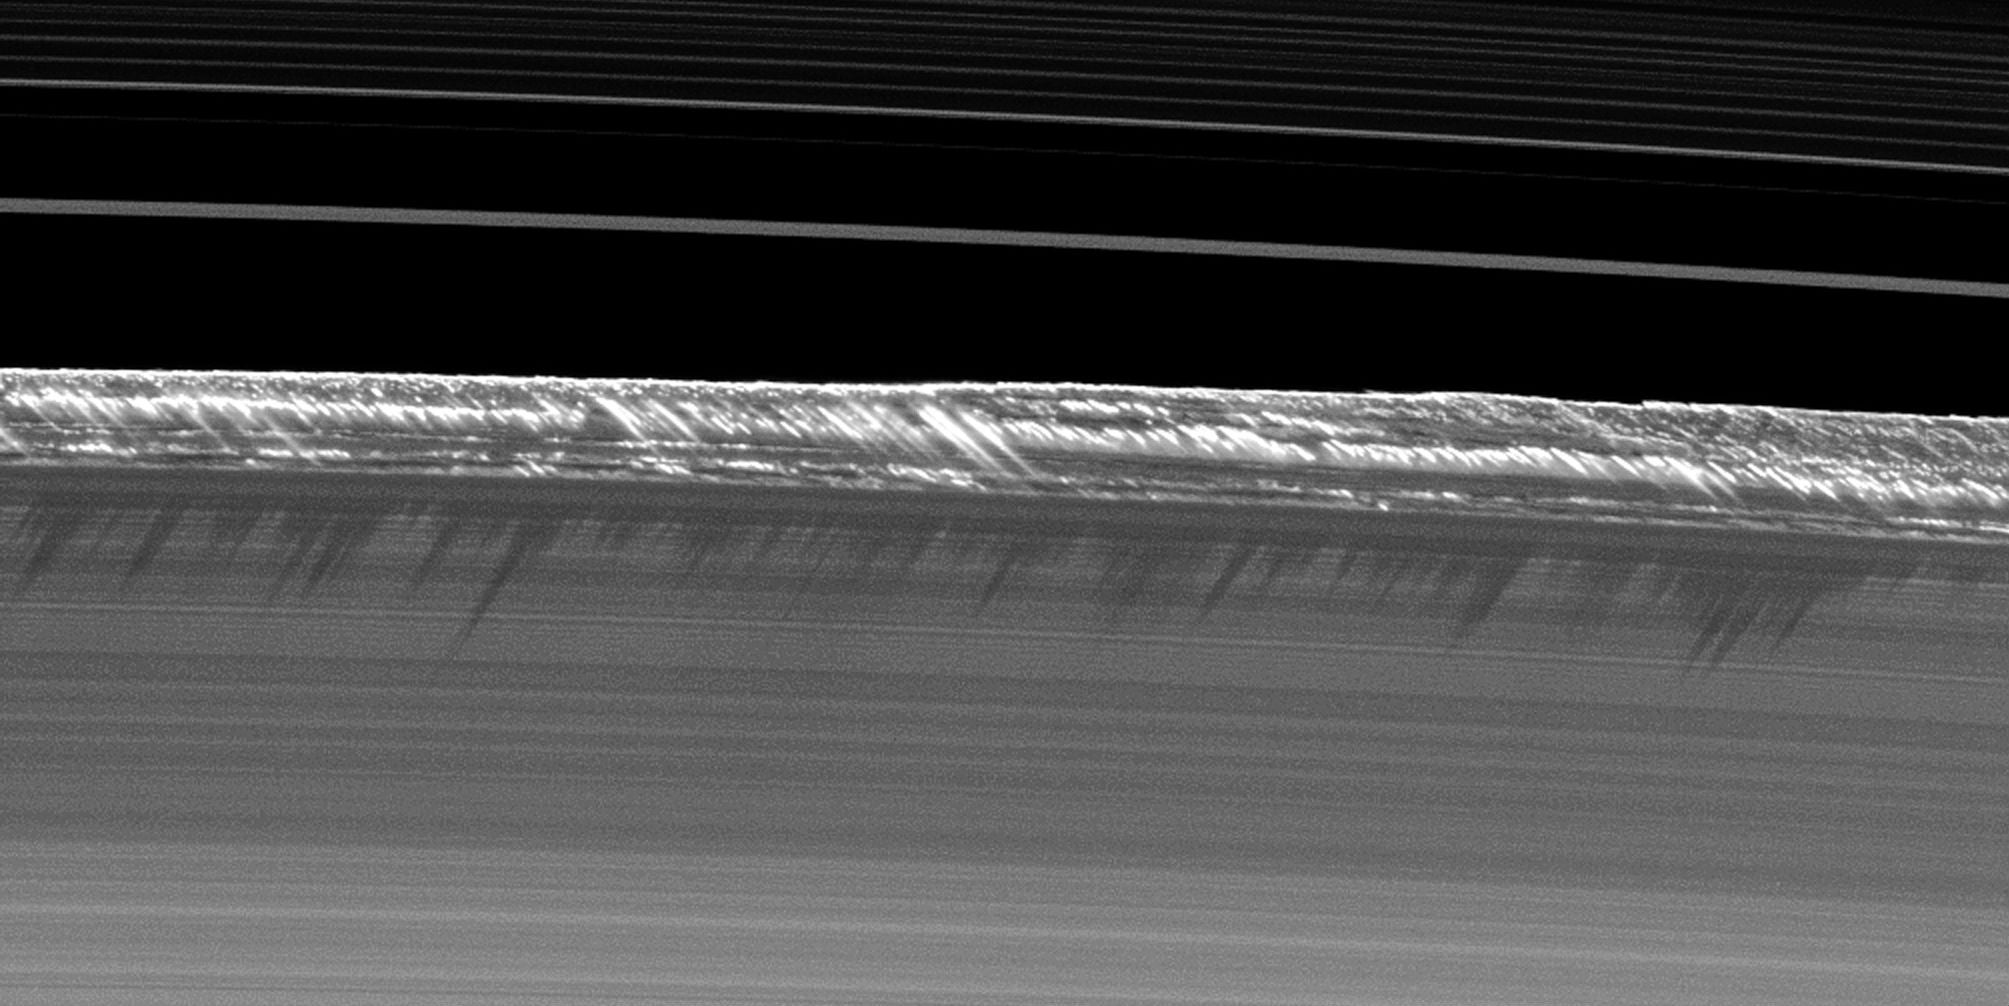 Saturn's rings contain soaring towers of ice